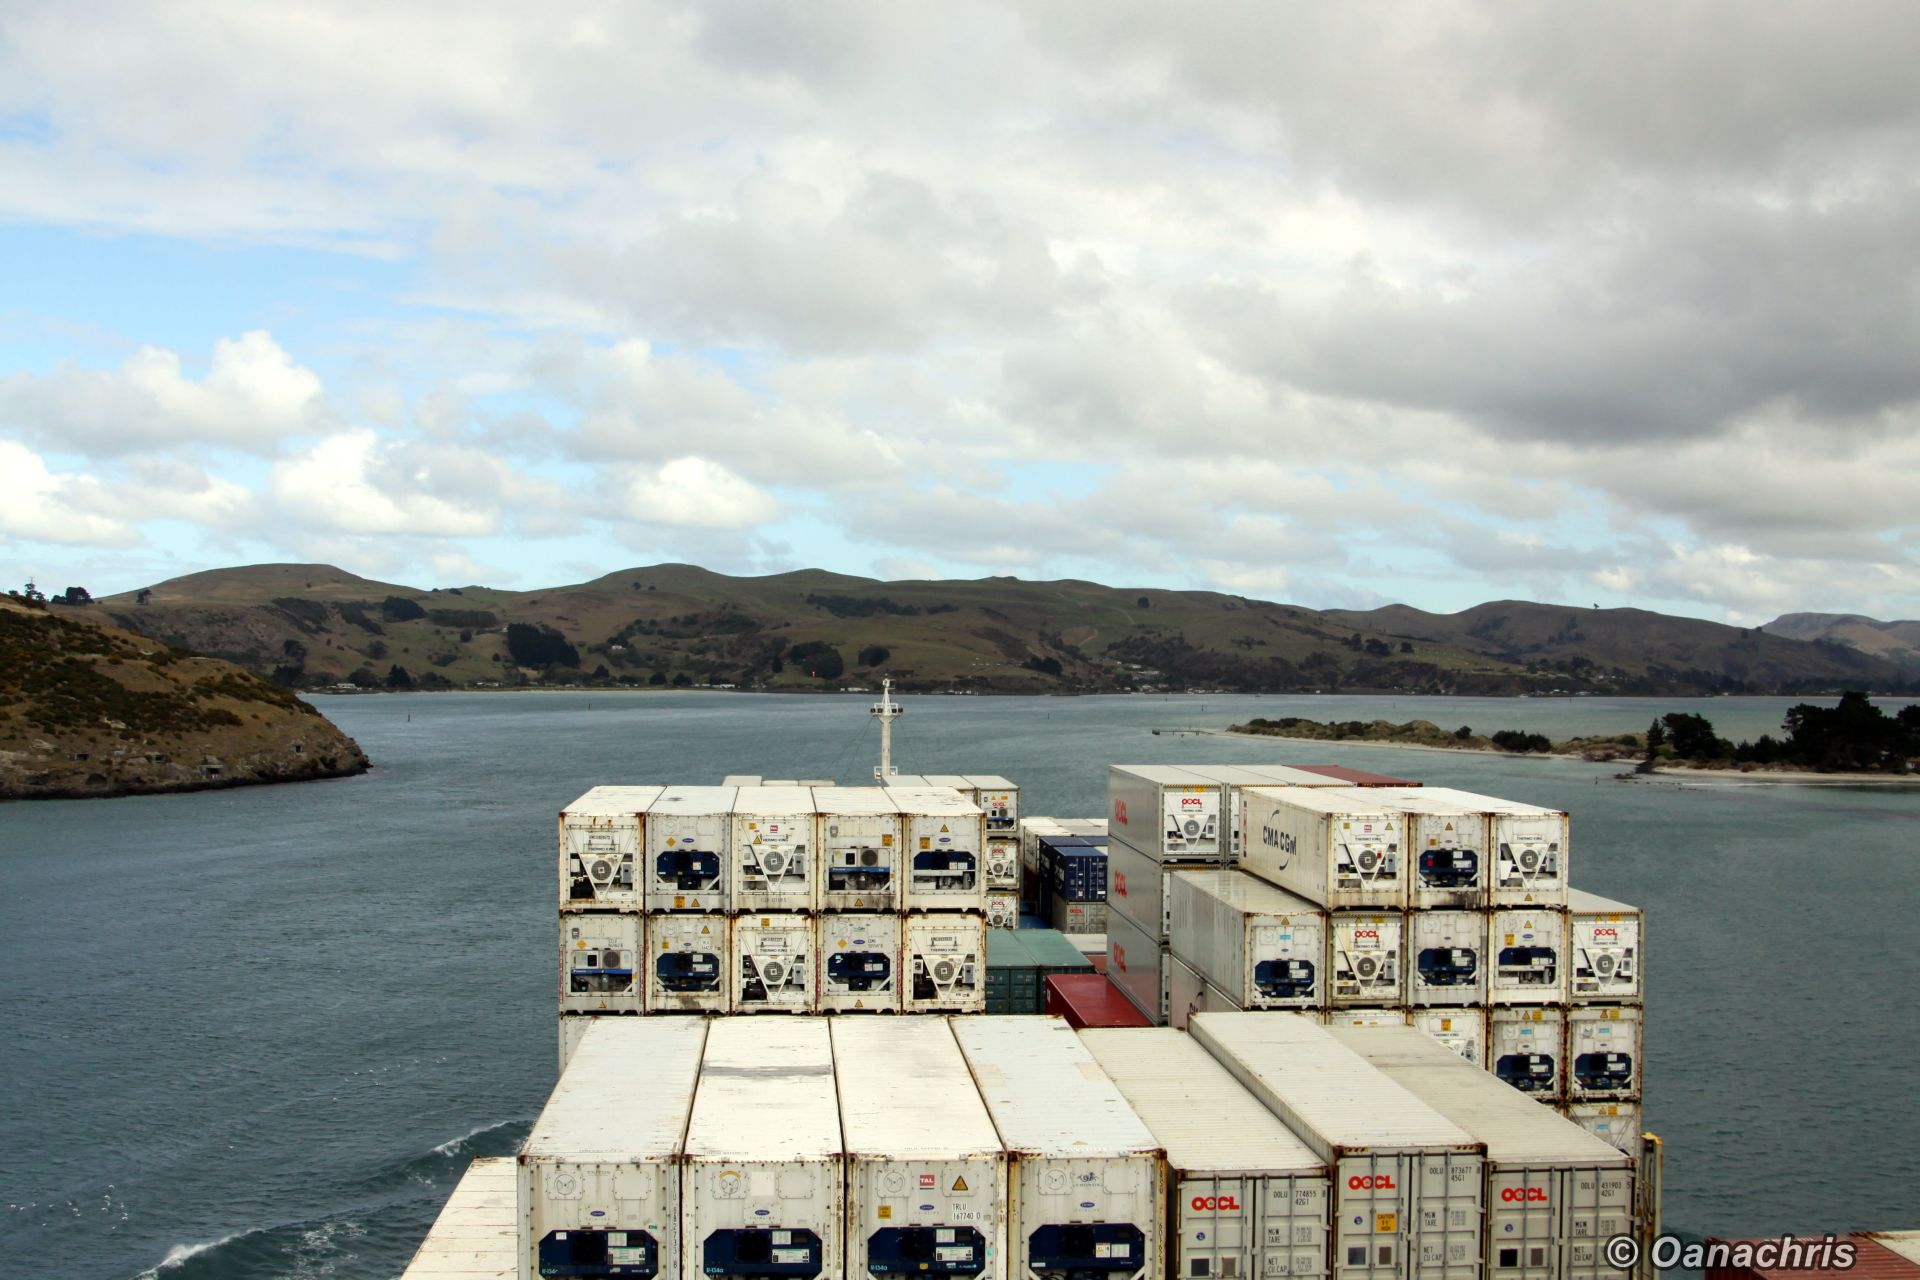 entering  departure maneuver port chalmers  nz